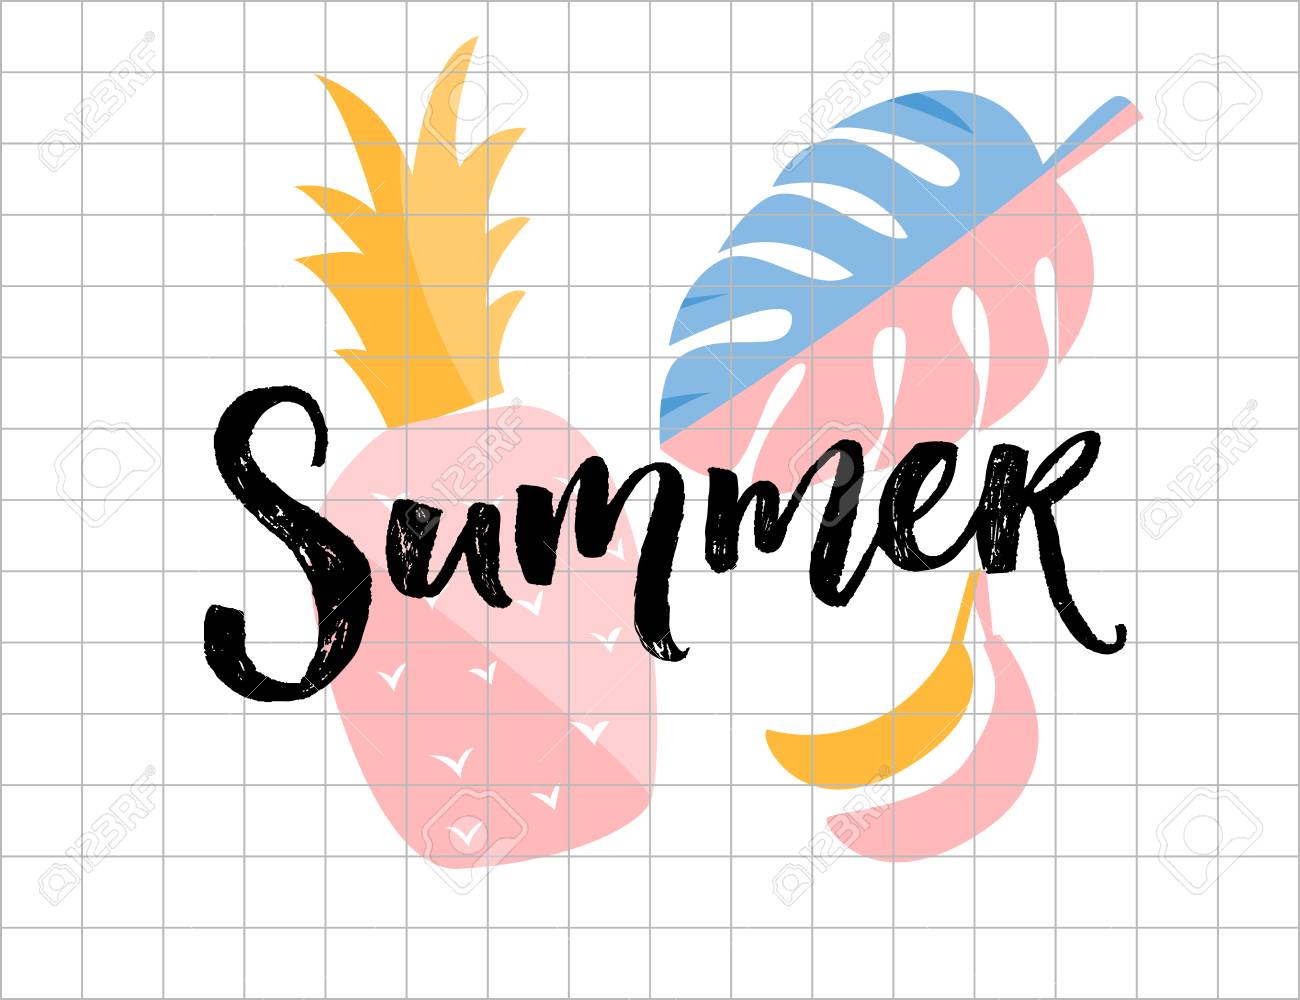 Summer poster. Calligraphy word with pineapple, monstera leaf and banana illustrations. - 101646277